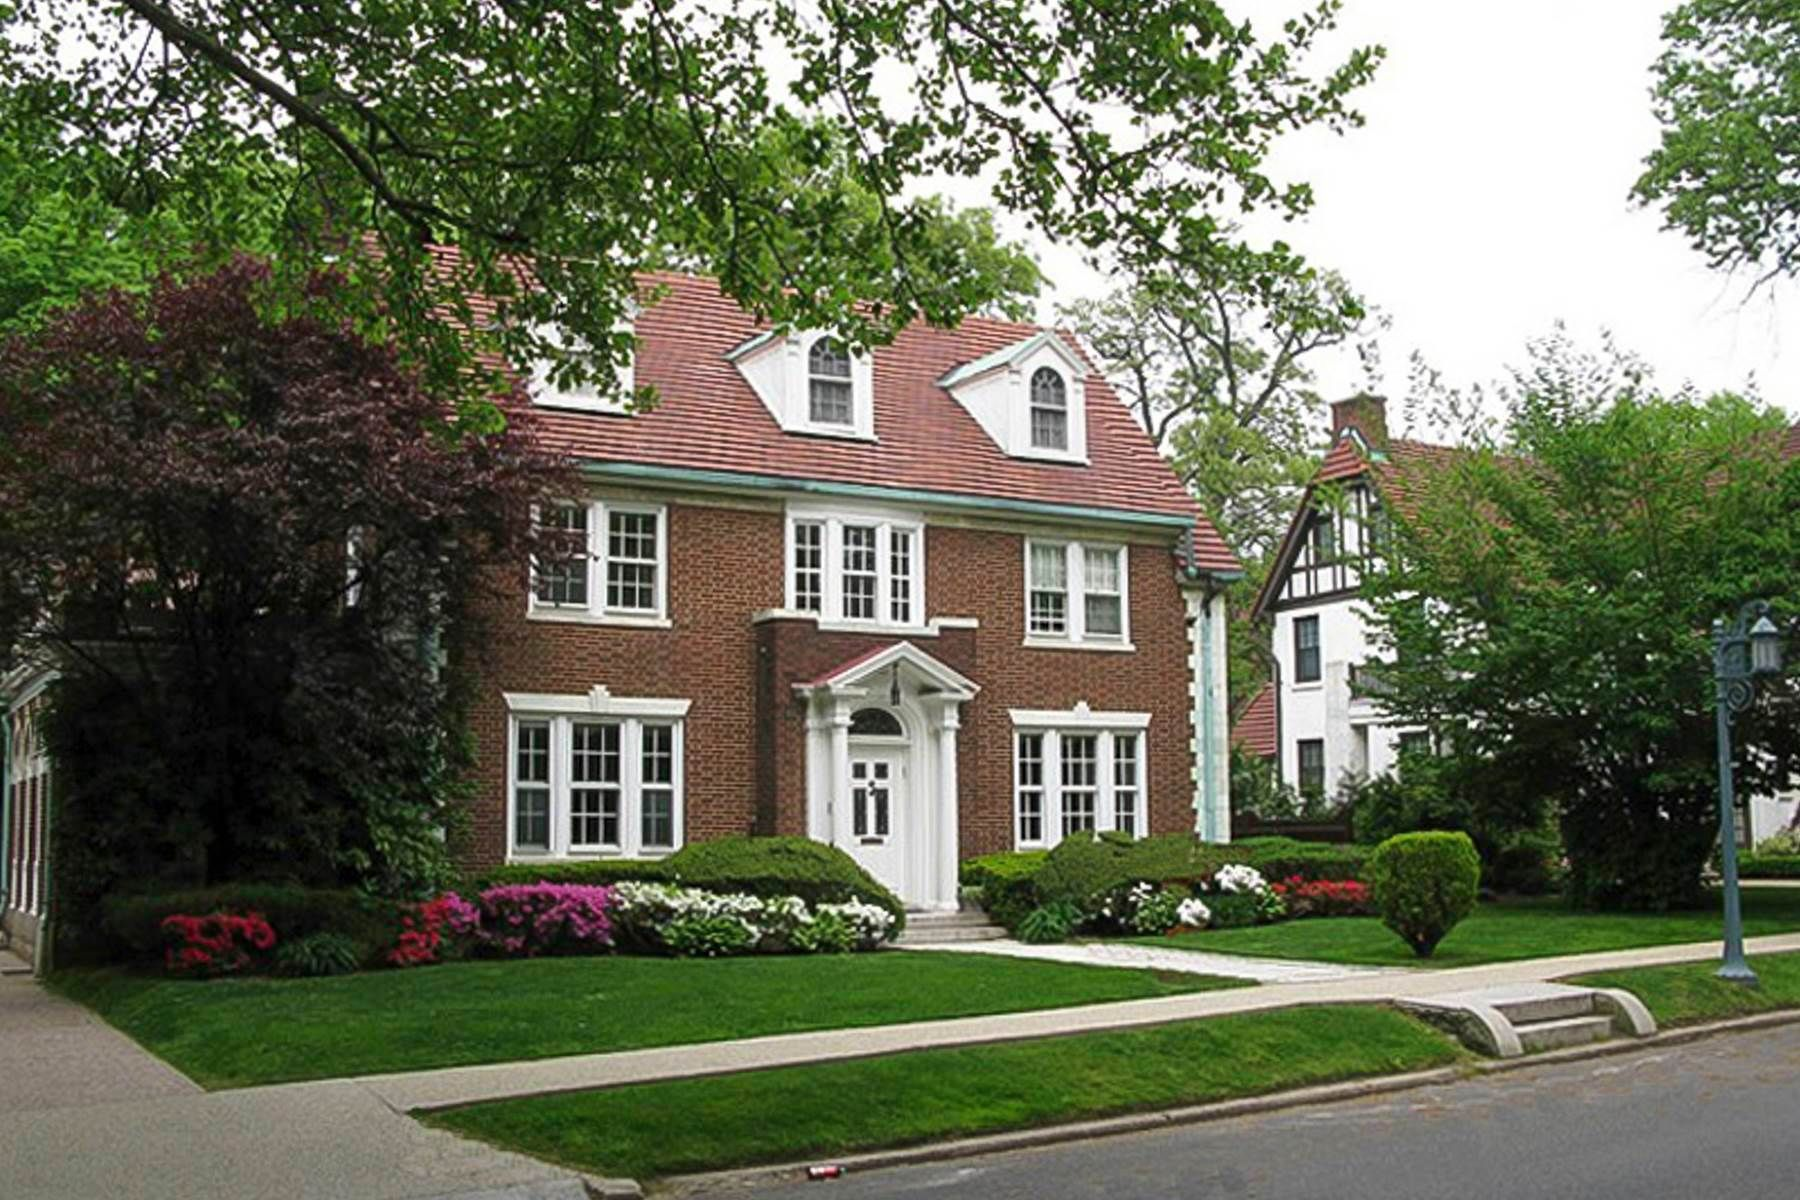 75fdc99a9e29d376a5fe1a57a8787722 - Forest Hills Gardens Real Estate Sotheby's